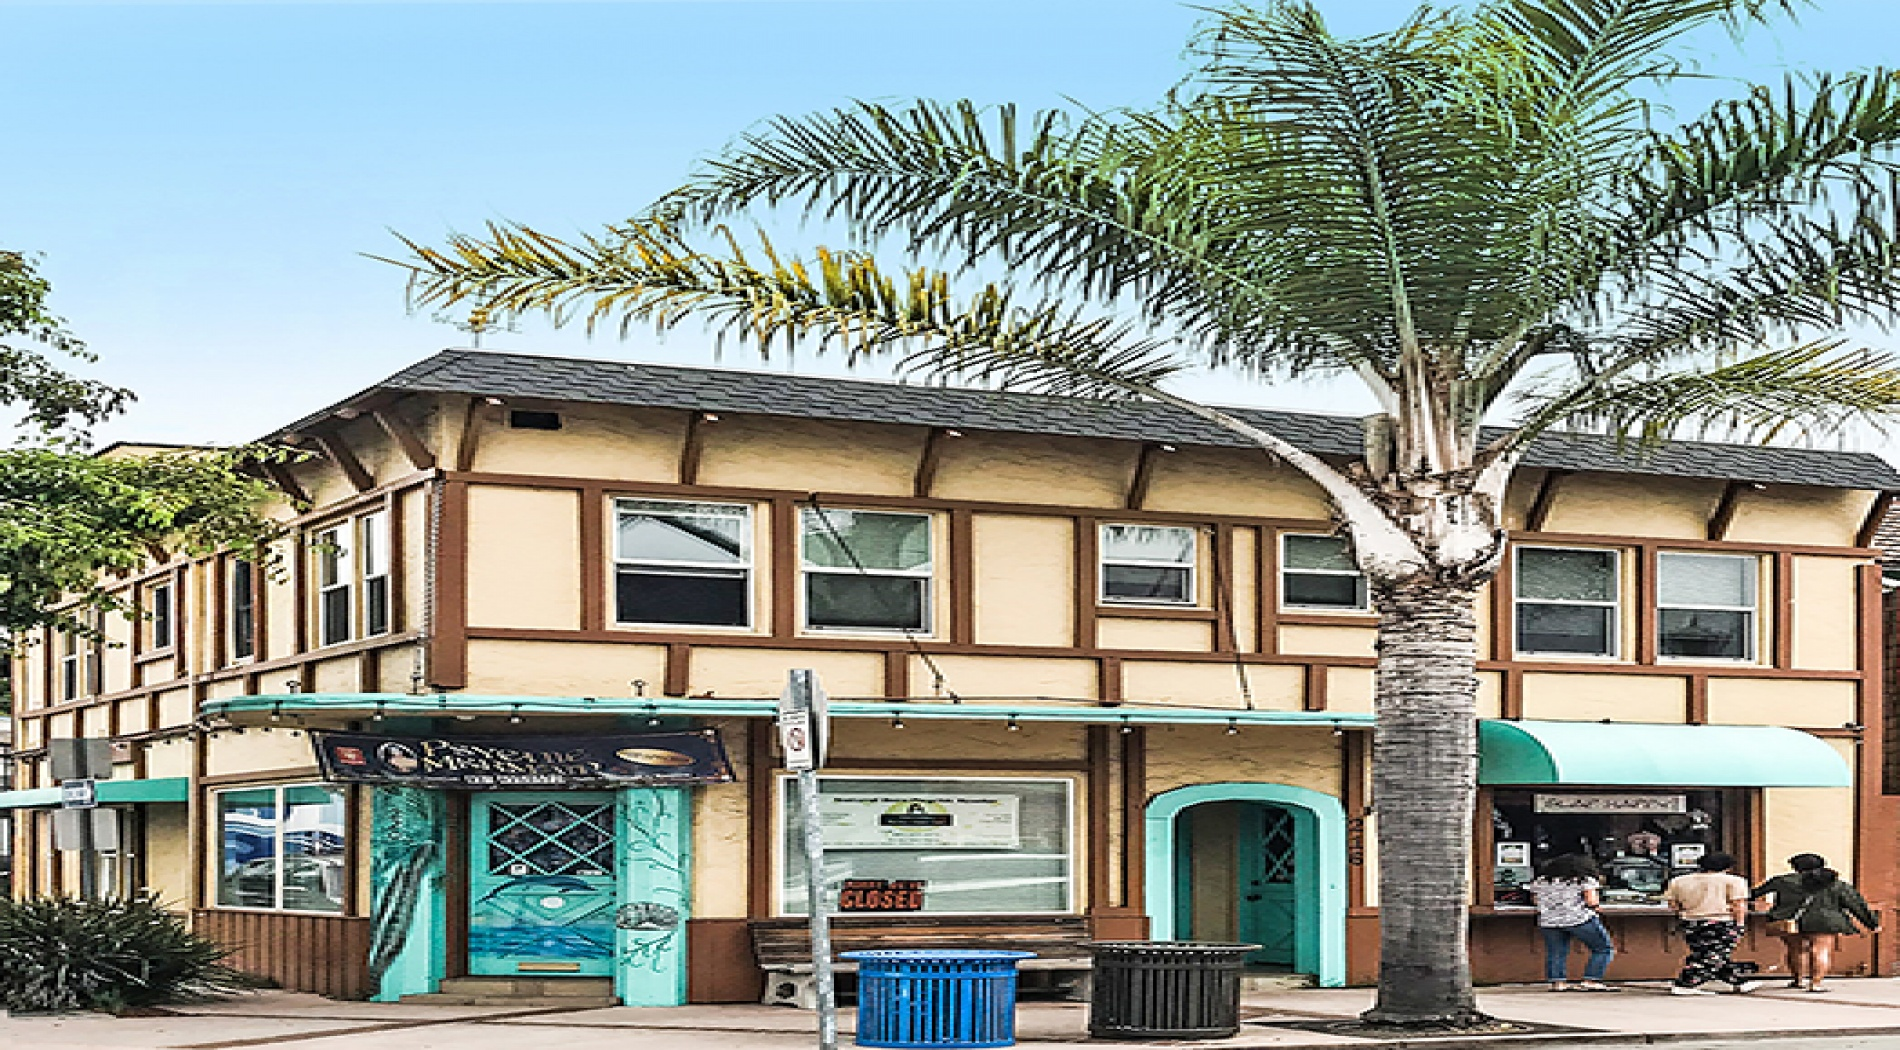 216 Capitola Ave, Capitola 95010, ,Retail,Sold,Capitola,1006